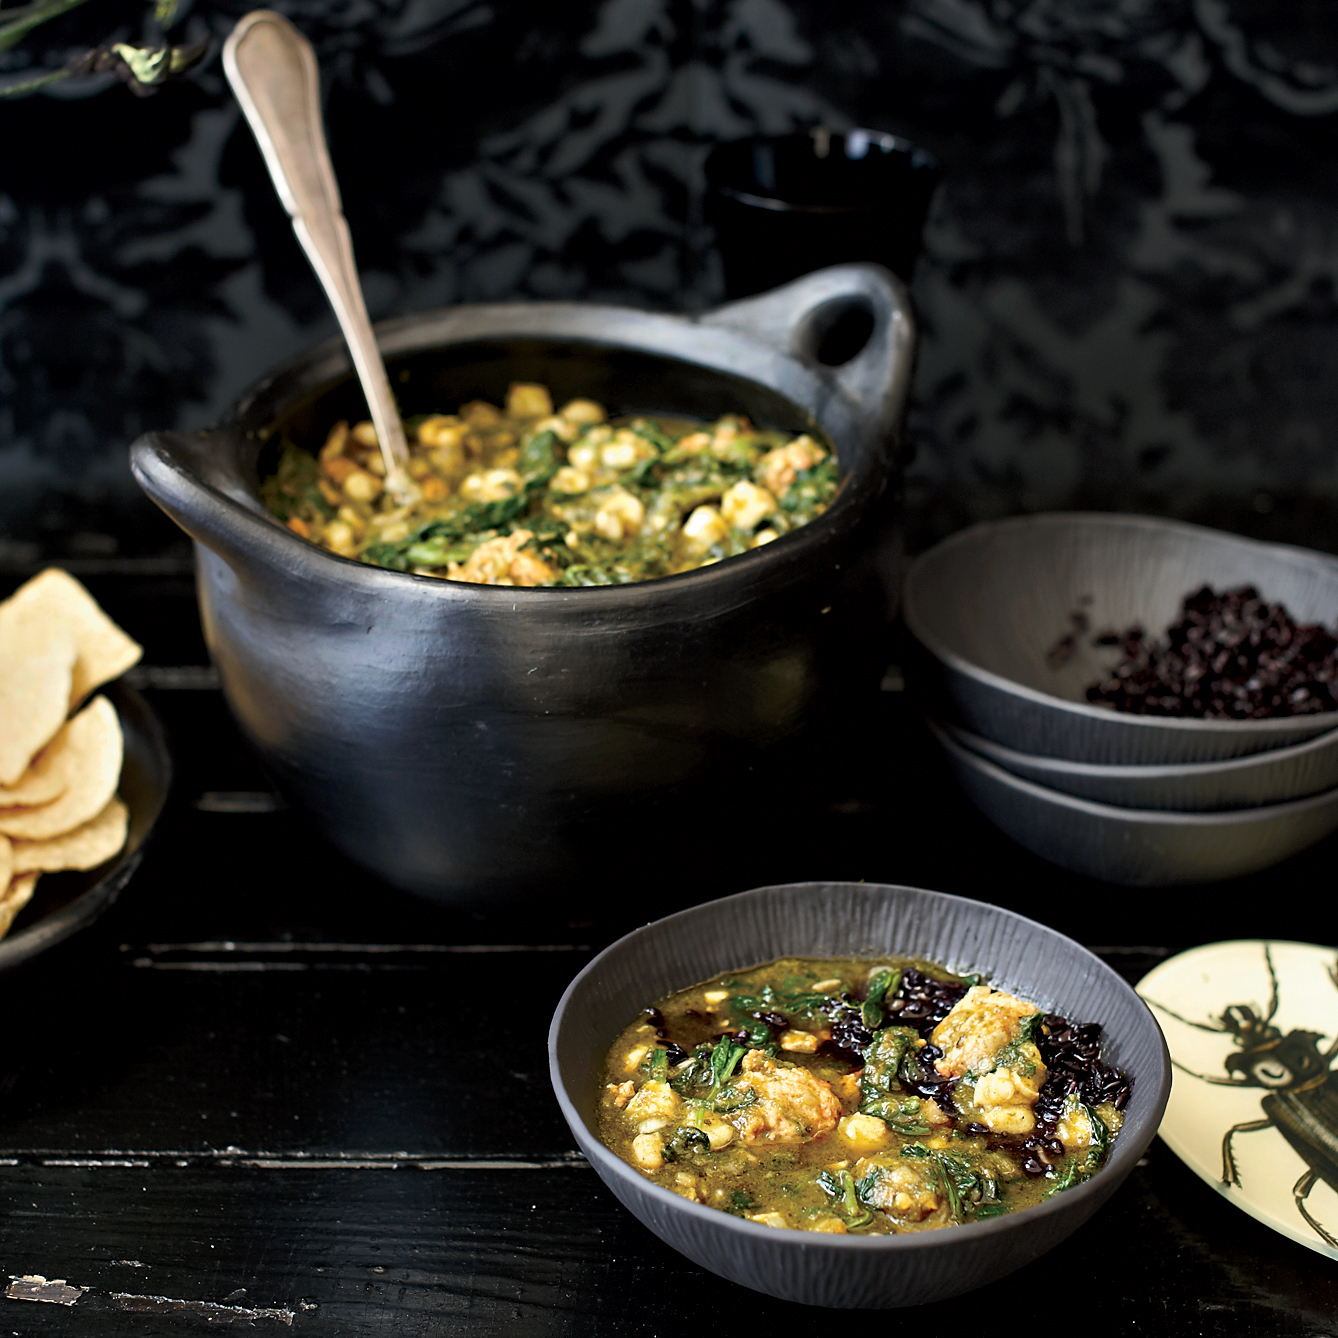 Swamp Chili (Poblano-and-Spinach Posole)